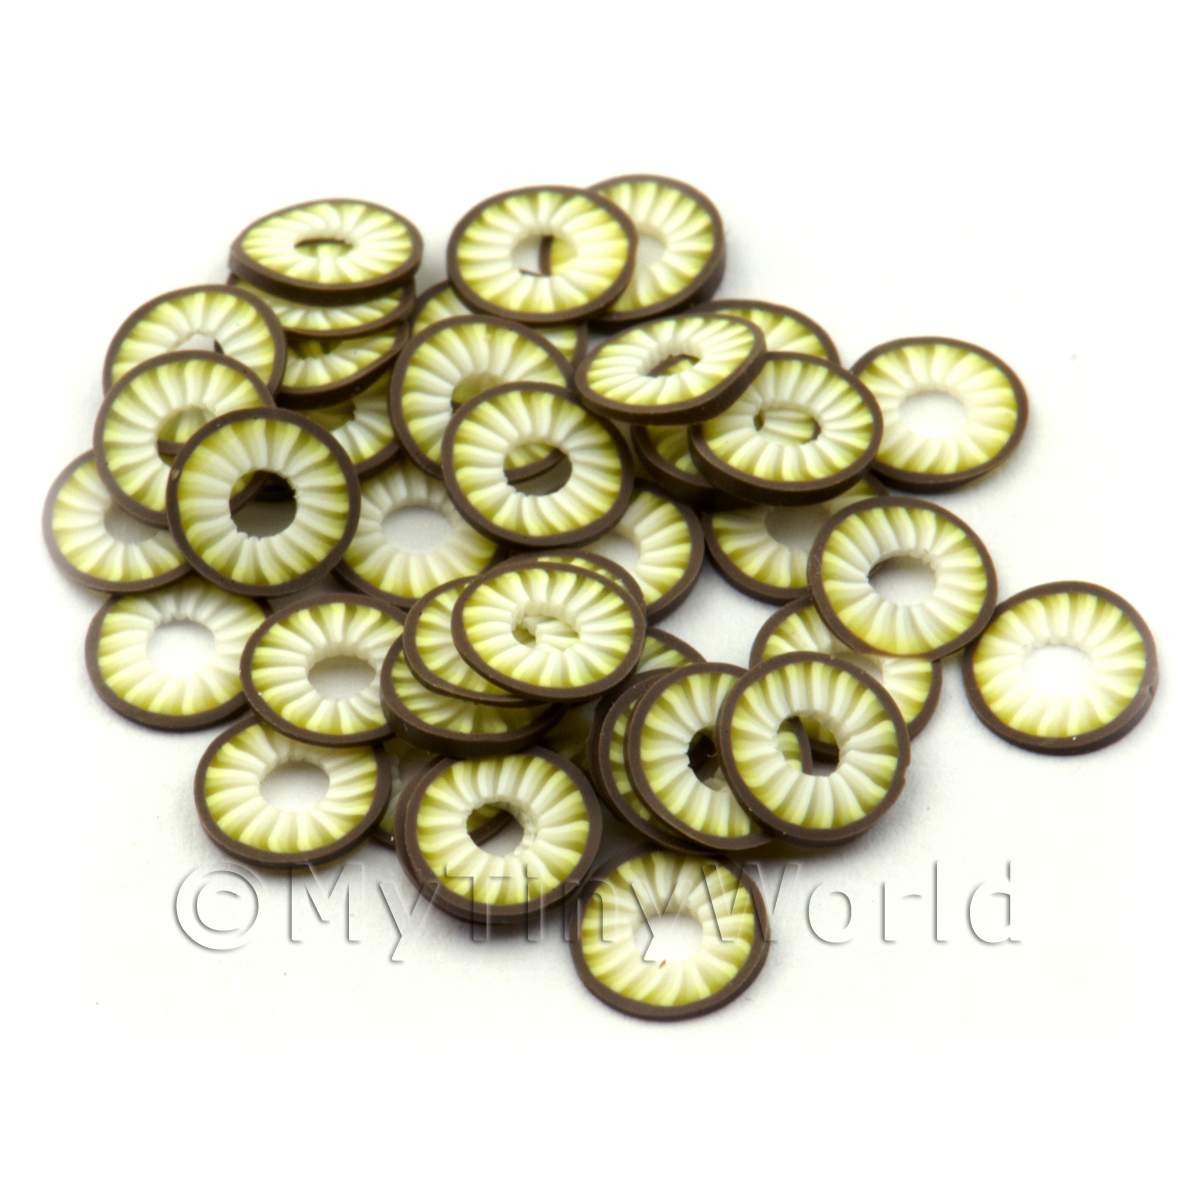 50 Handmade Coconut Ring Cane Slices  - Nail Art (ENS30)